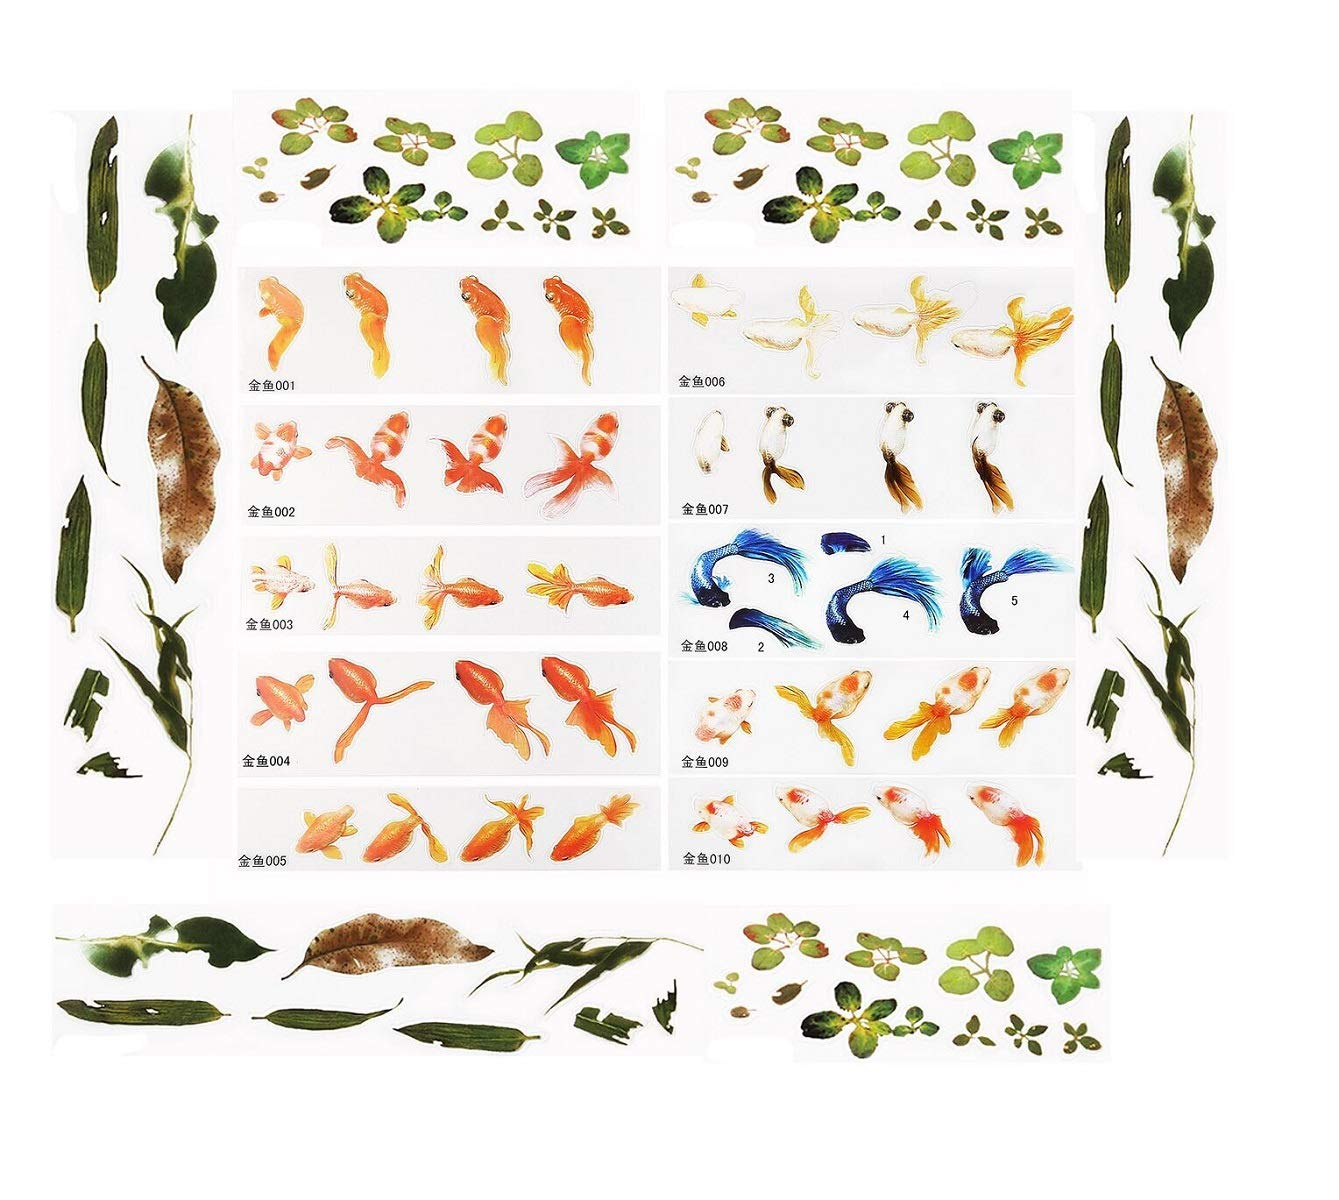 Yalulu 30 Sheets 3D Simulation Resin Decorative Sticker Micro Landscape Phone Case DIY Mold Fish Leaves Sticker Resin Jewelry Making